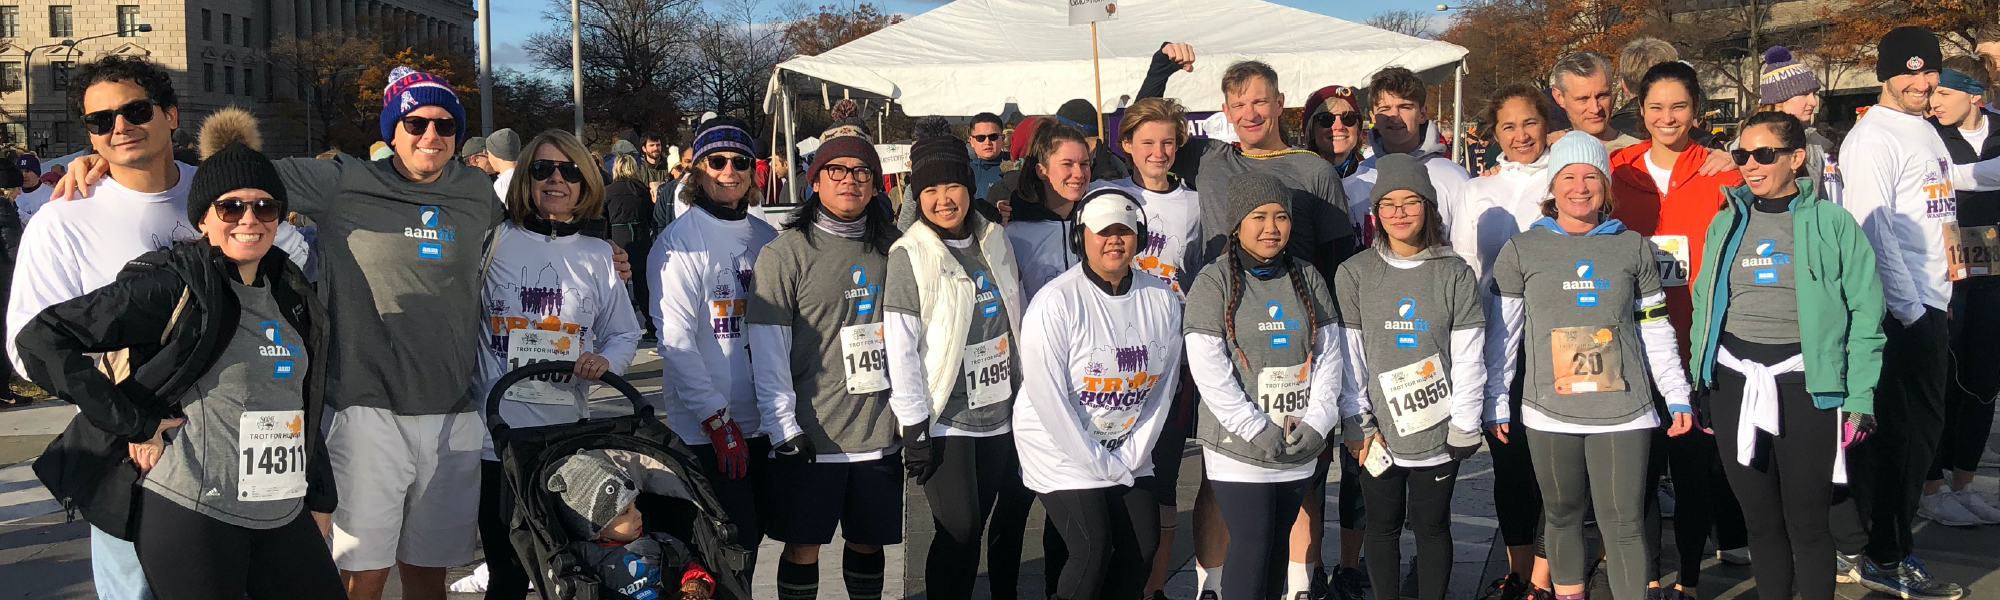 AAM employees and family members joined more than 2,000 walkers and runners at Freedom Plaza on Thanksgiving for the So Others Might Eat (SOME) annual Trot for Hunger.